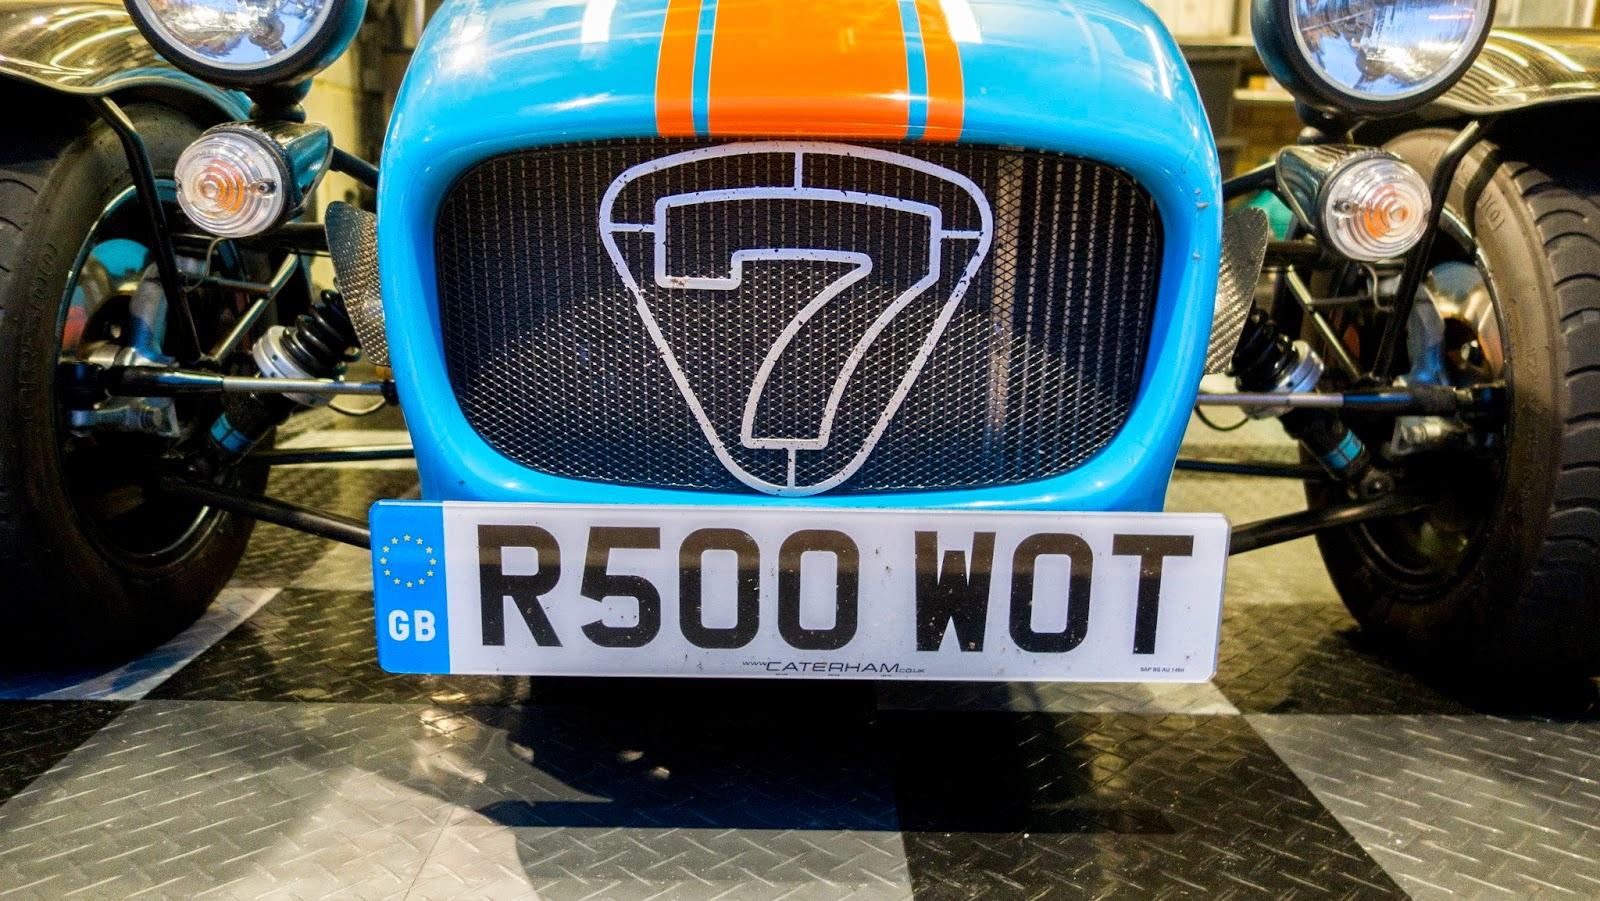 R500 WOT number plate